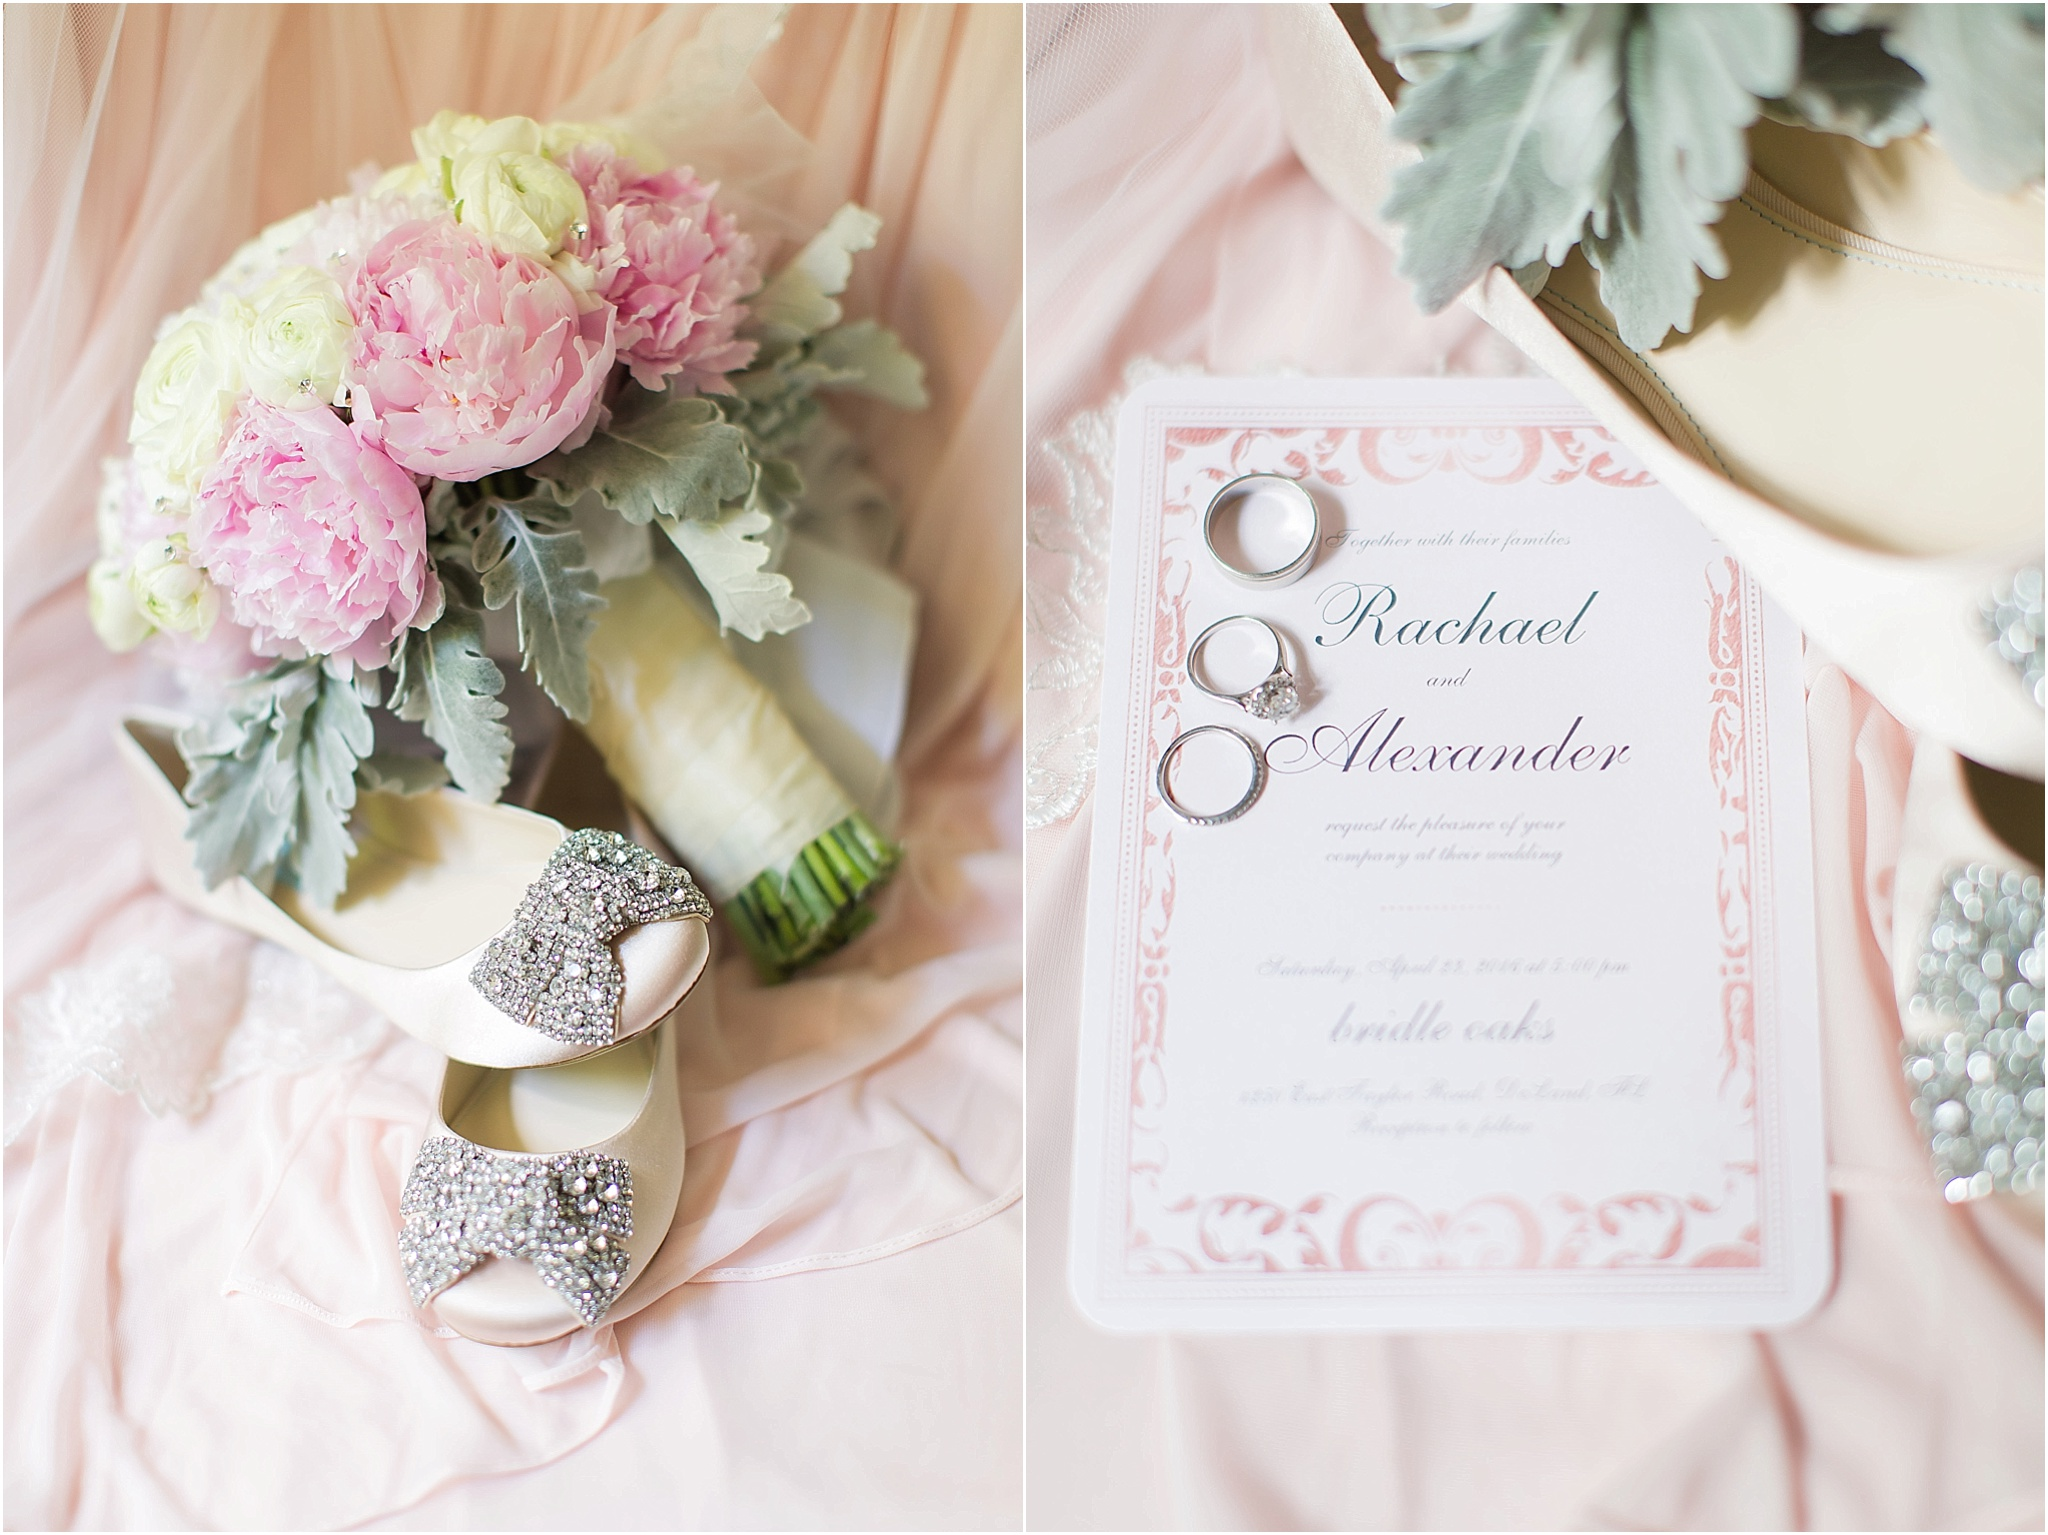 Blush wedding details of bridal shoes, peony bouquet and invitation